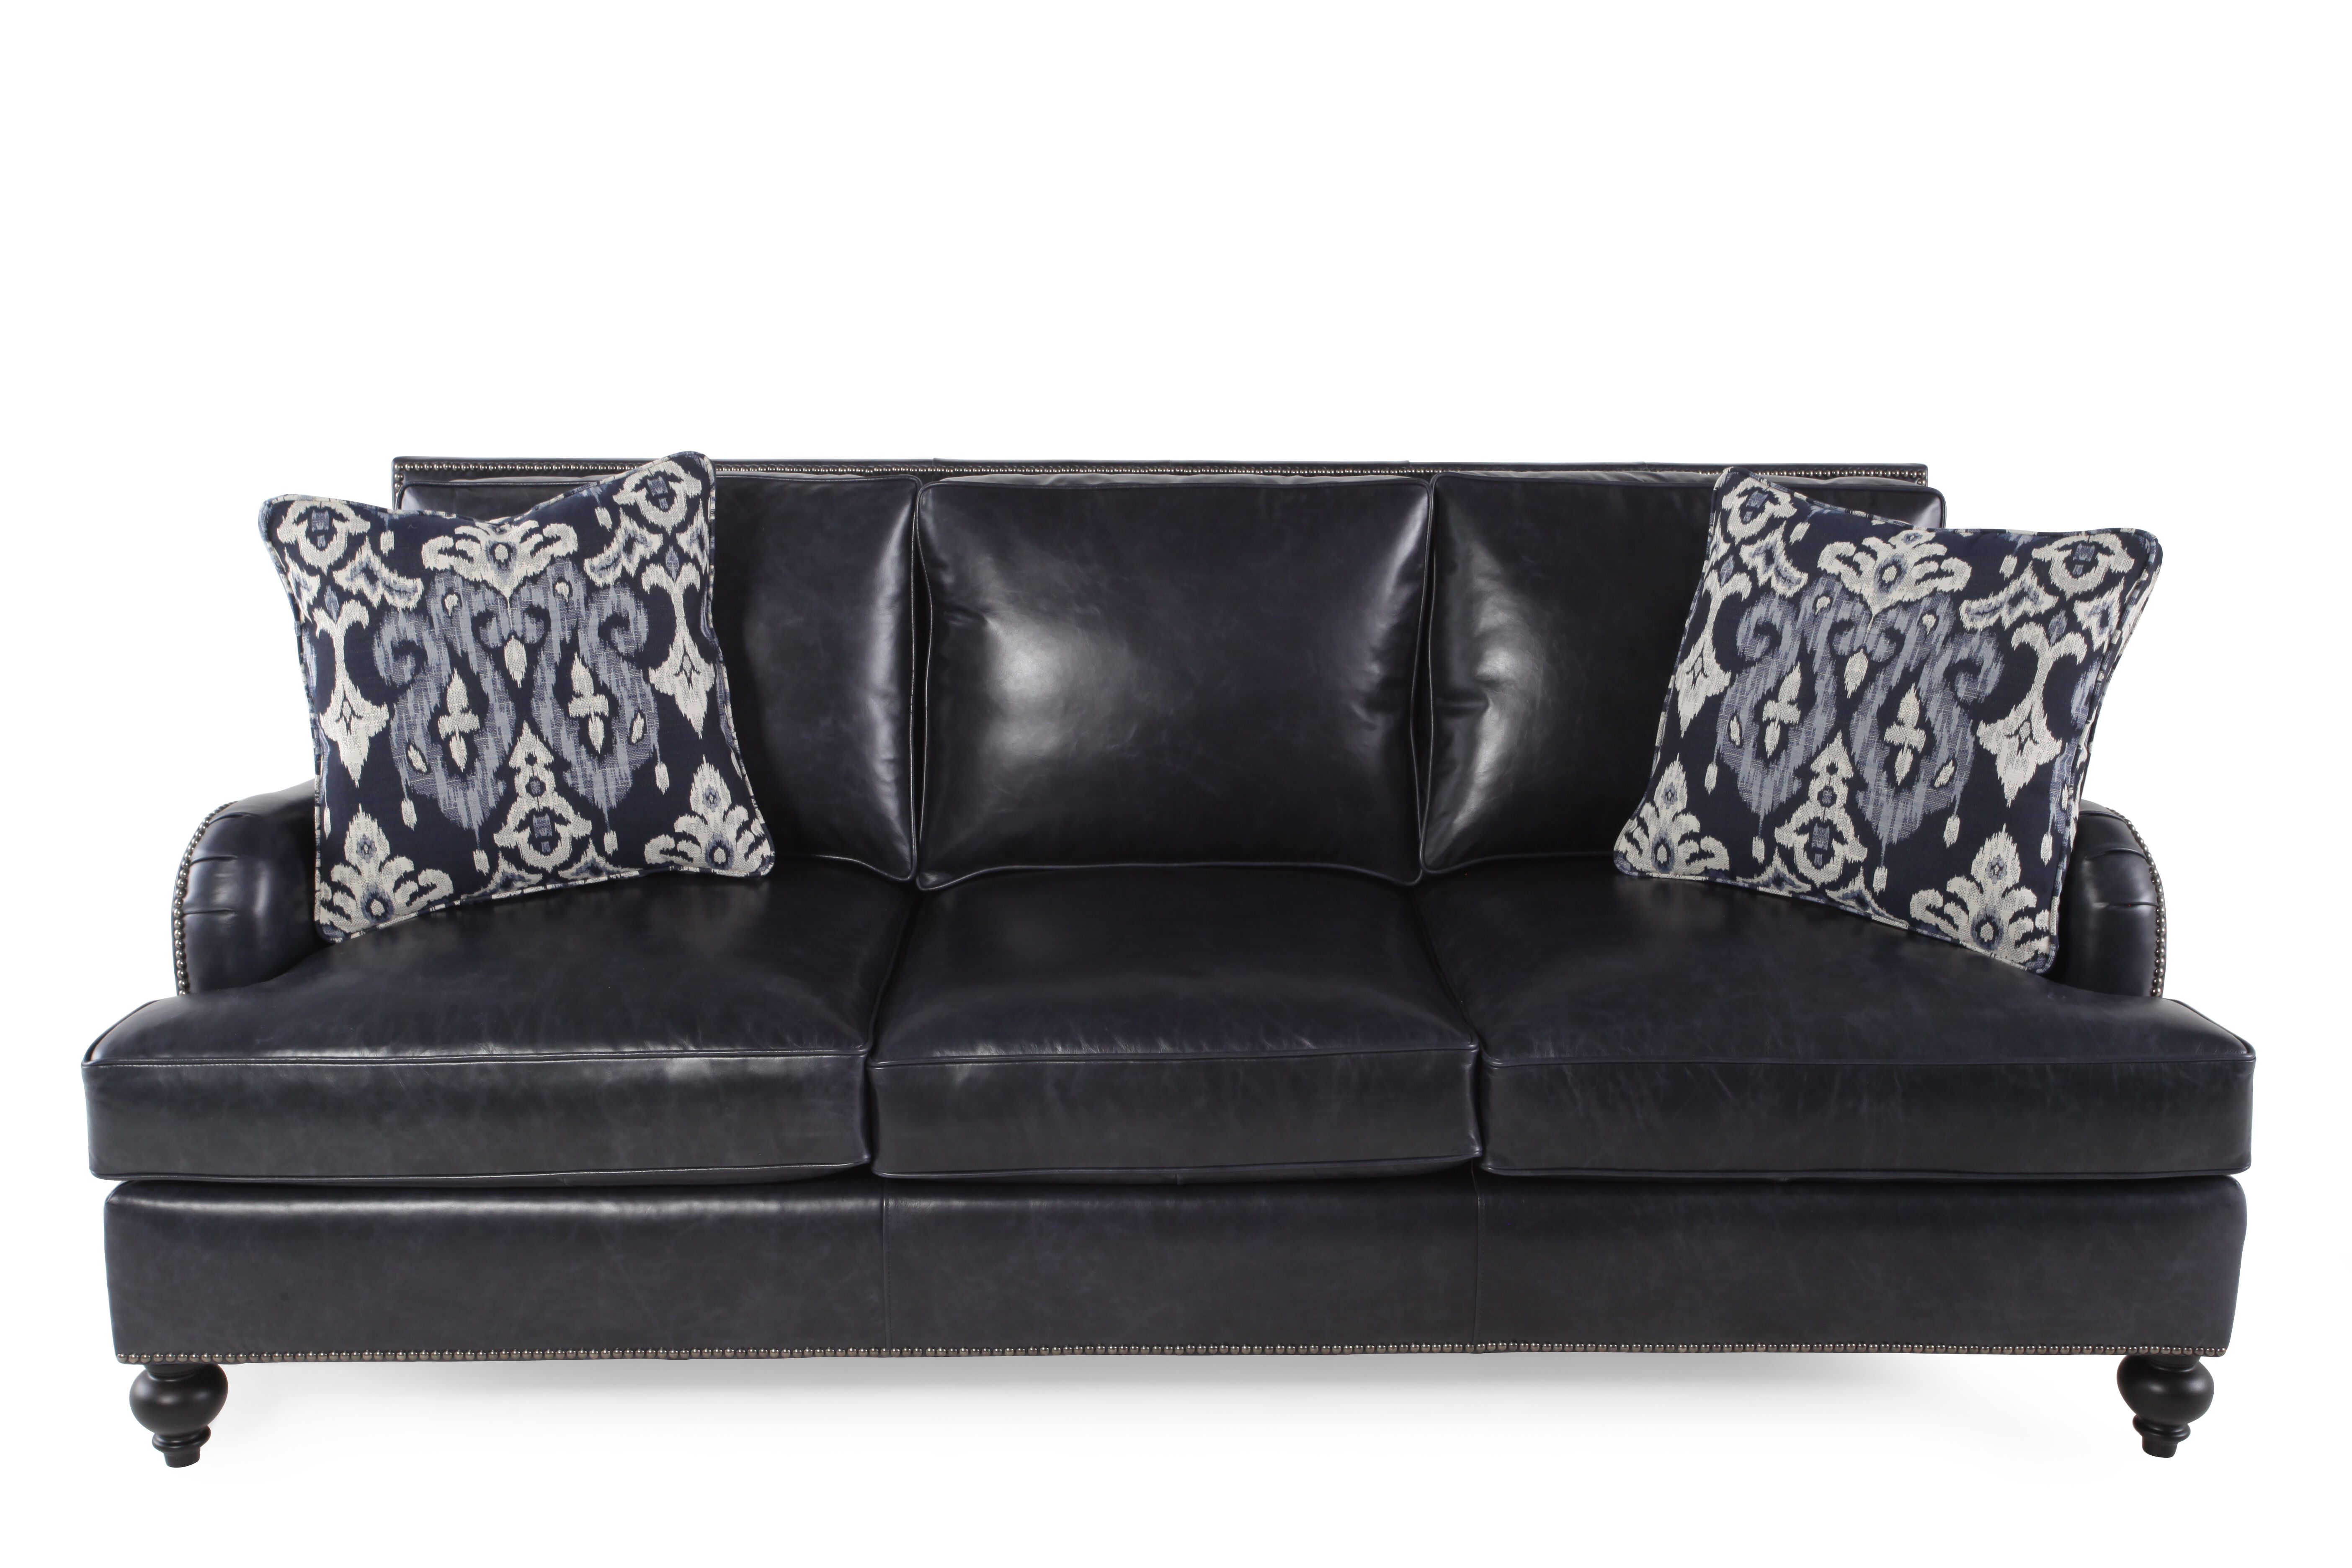 Bernhardt Beckford Leather Sofa